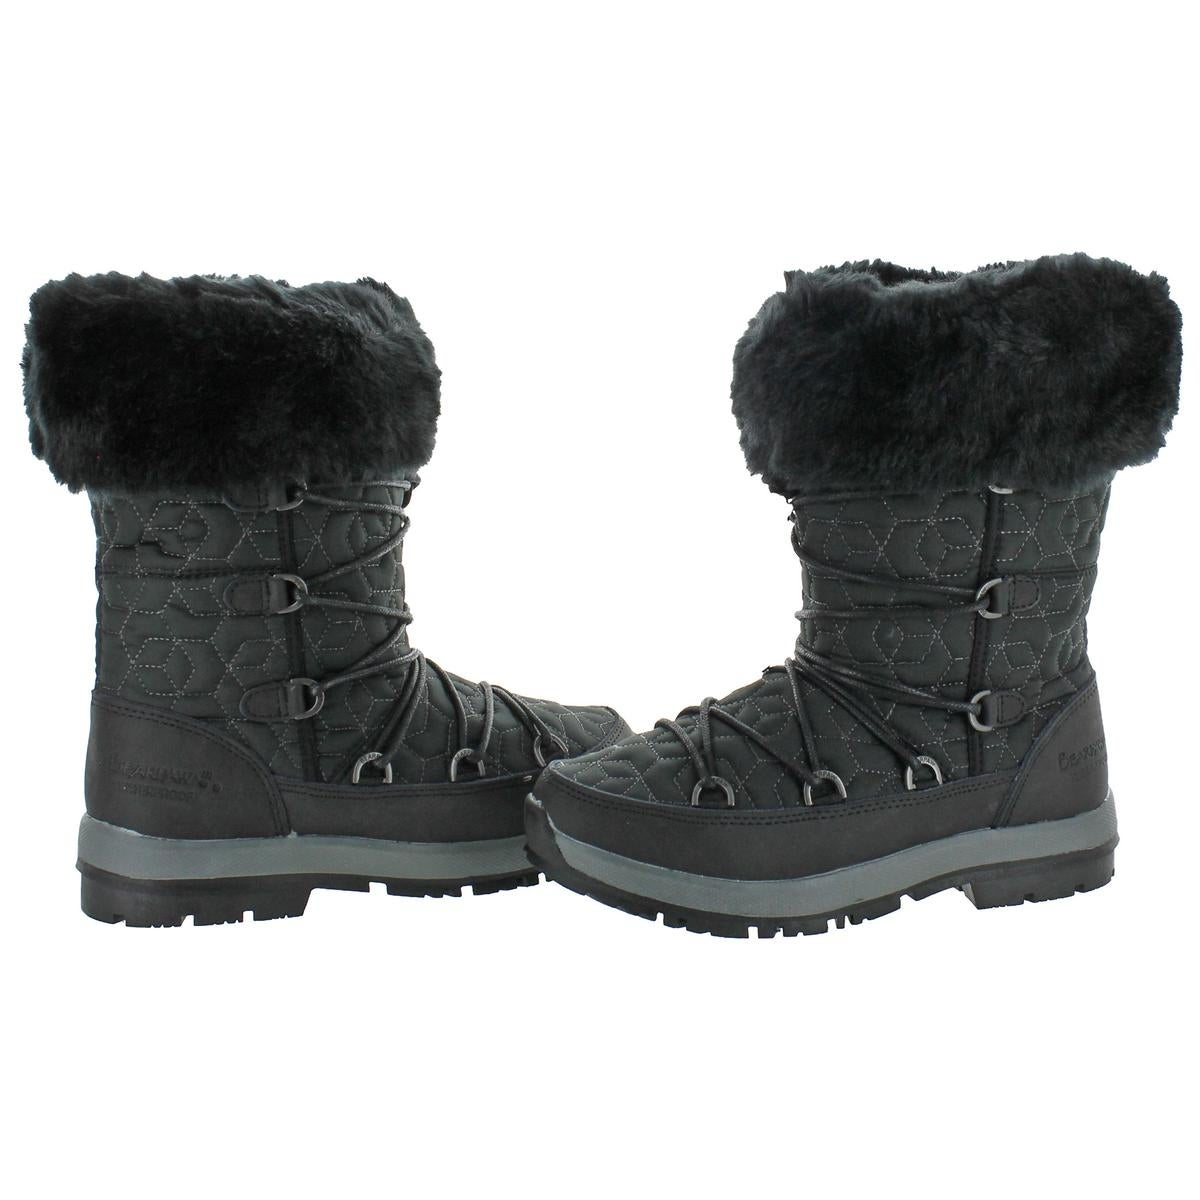 ec0a5920bed81 Bearpaw-Womens-Leslie-Winter-Boots-Winter-Pull-On.jpg